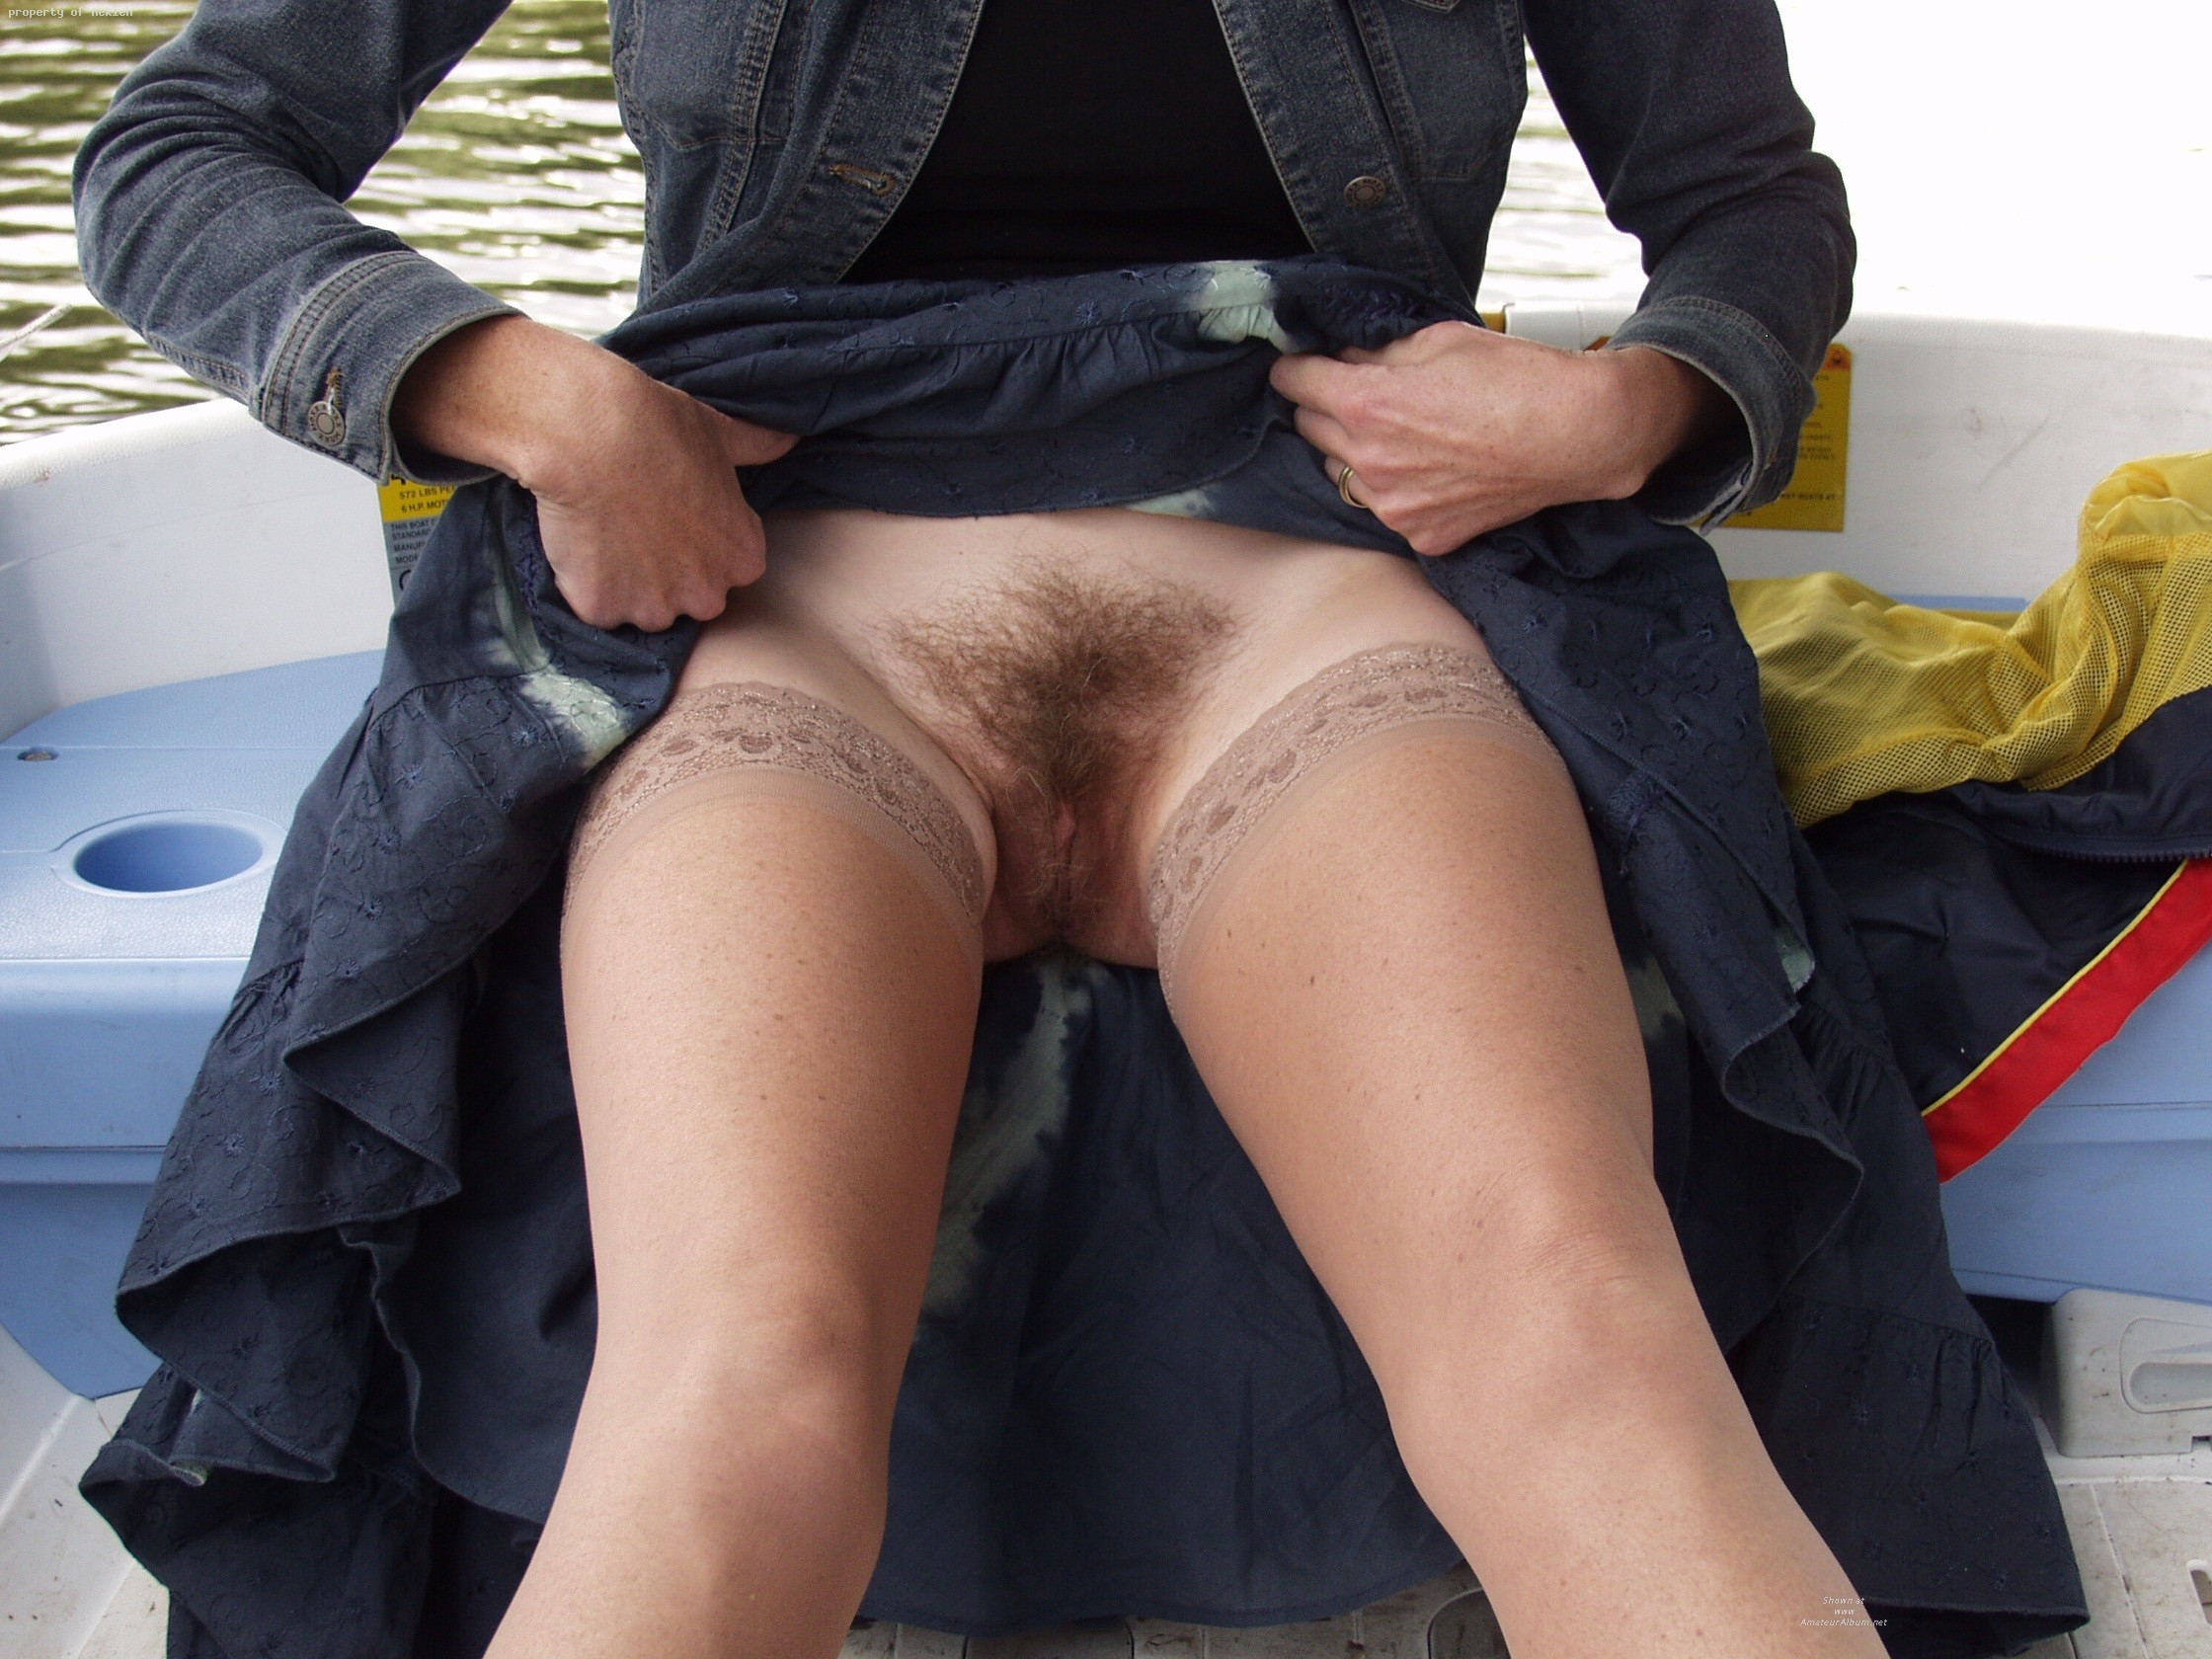 Lifts Up Her Skirt For A Hot Fucking